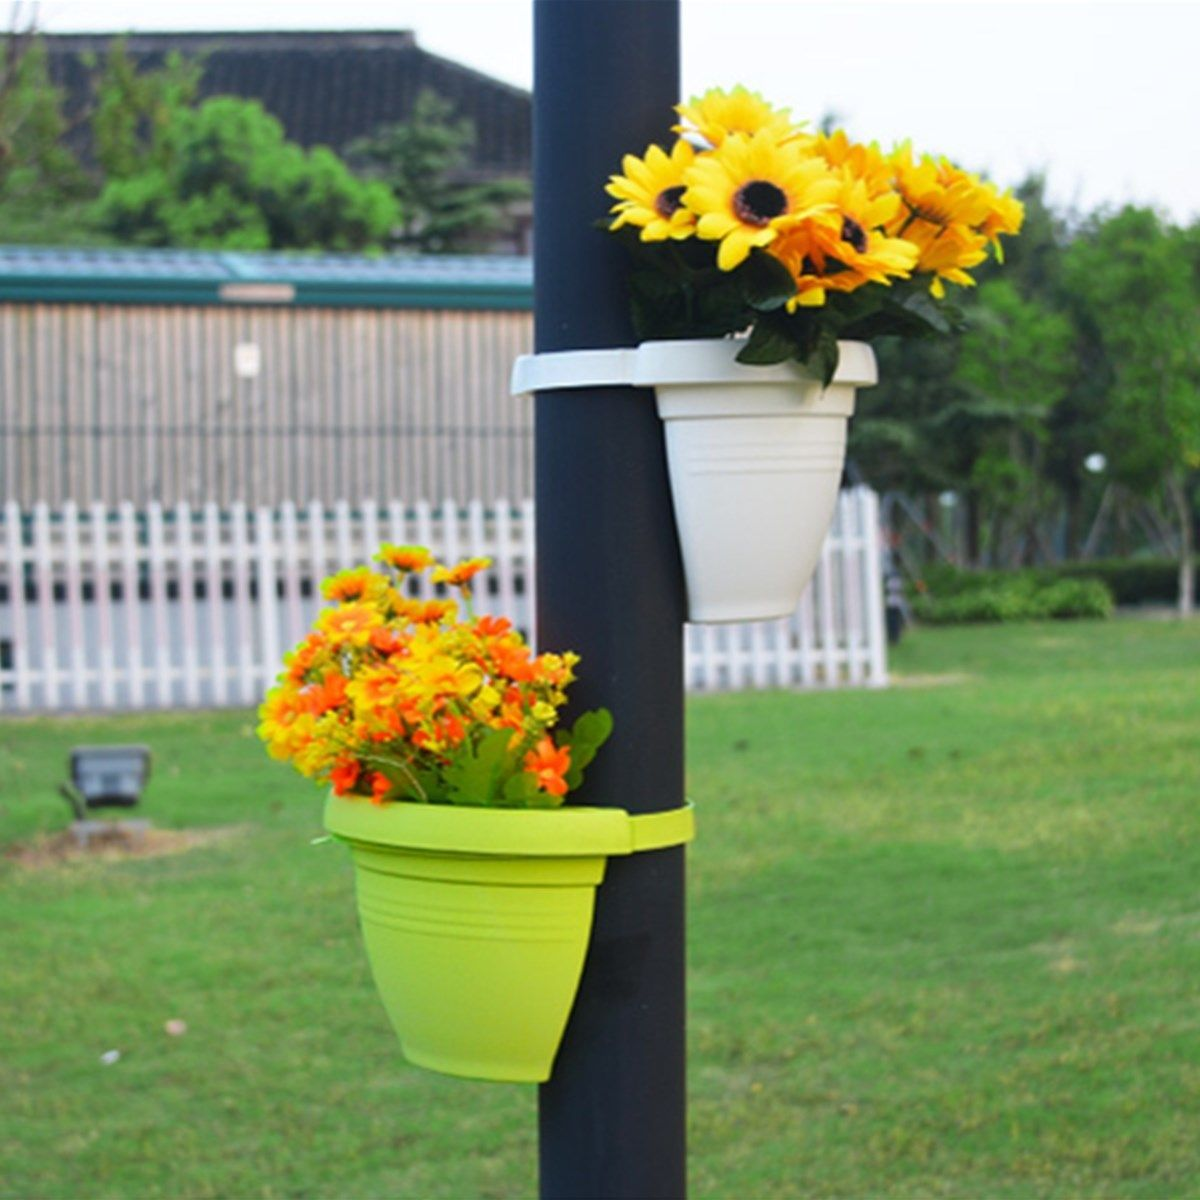 garden decoration nursery pot pipe plant balcony flower home tub basket drain pin planter pots hanging